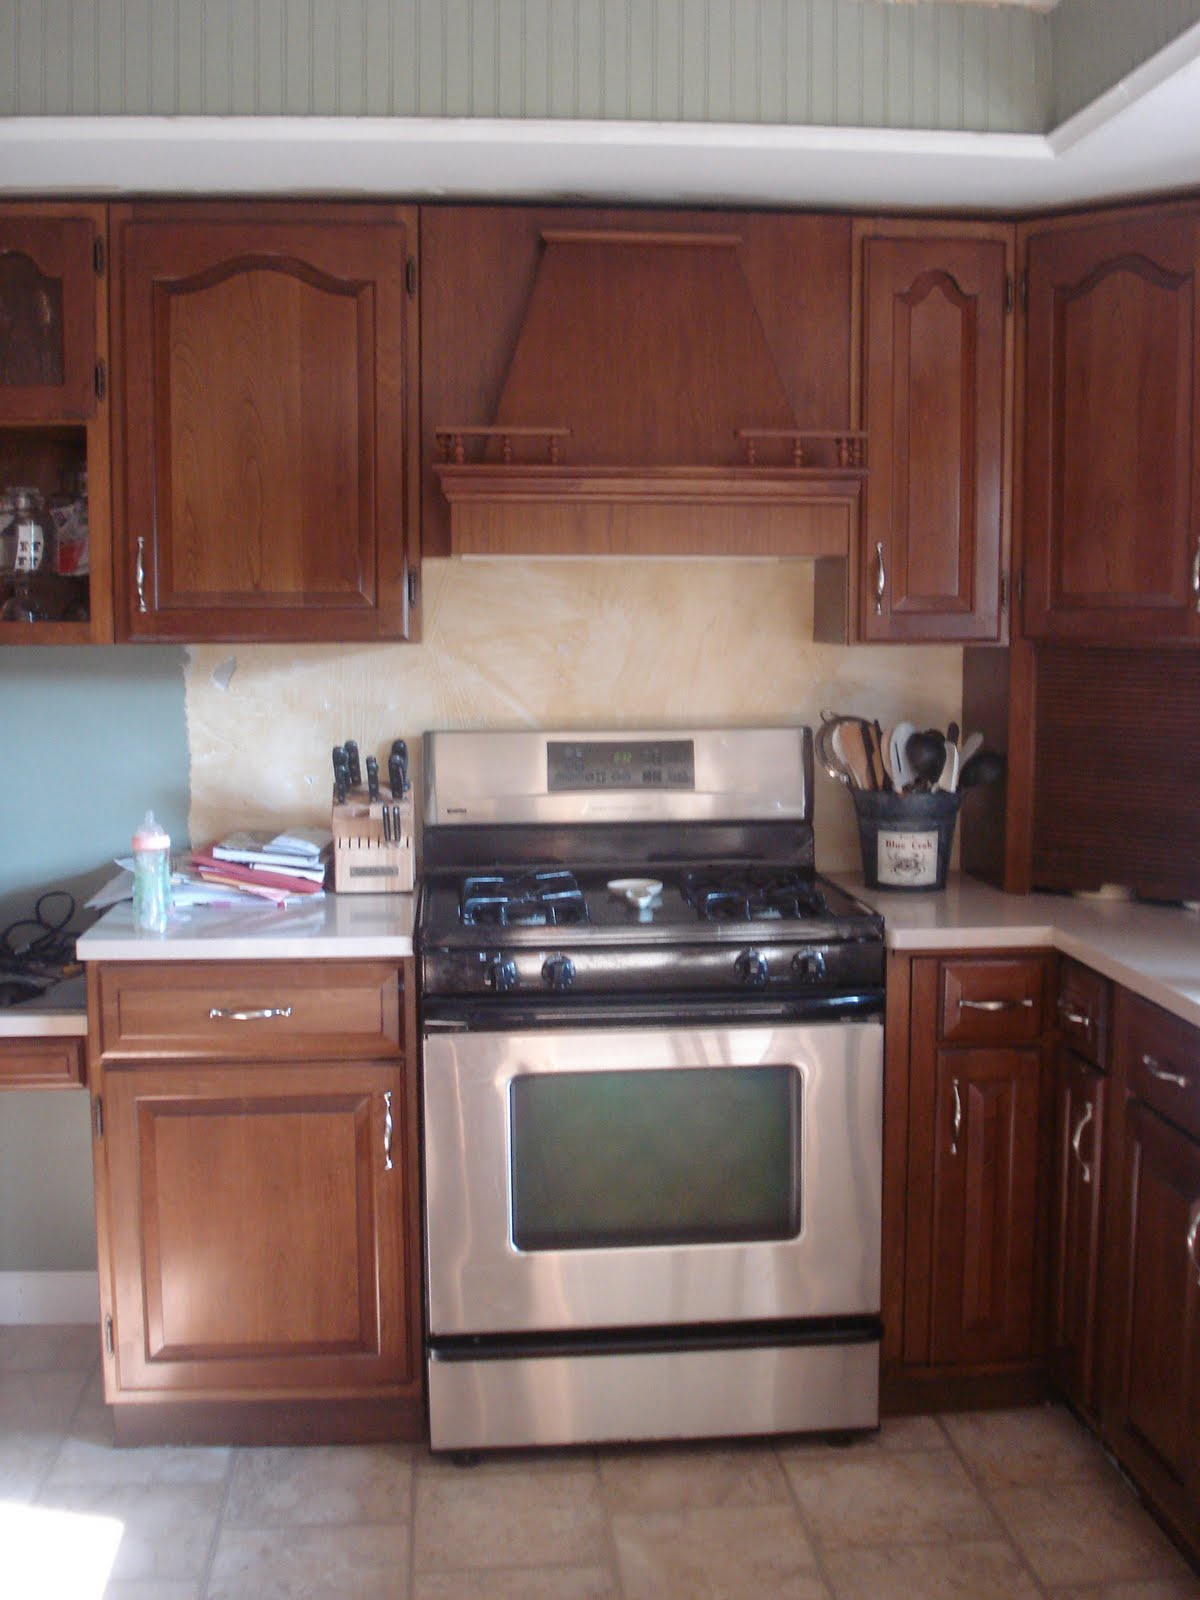 Craigslist Kitchen Cabinets Craigslist Kitchen Recap Binkies And Briefcases